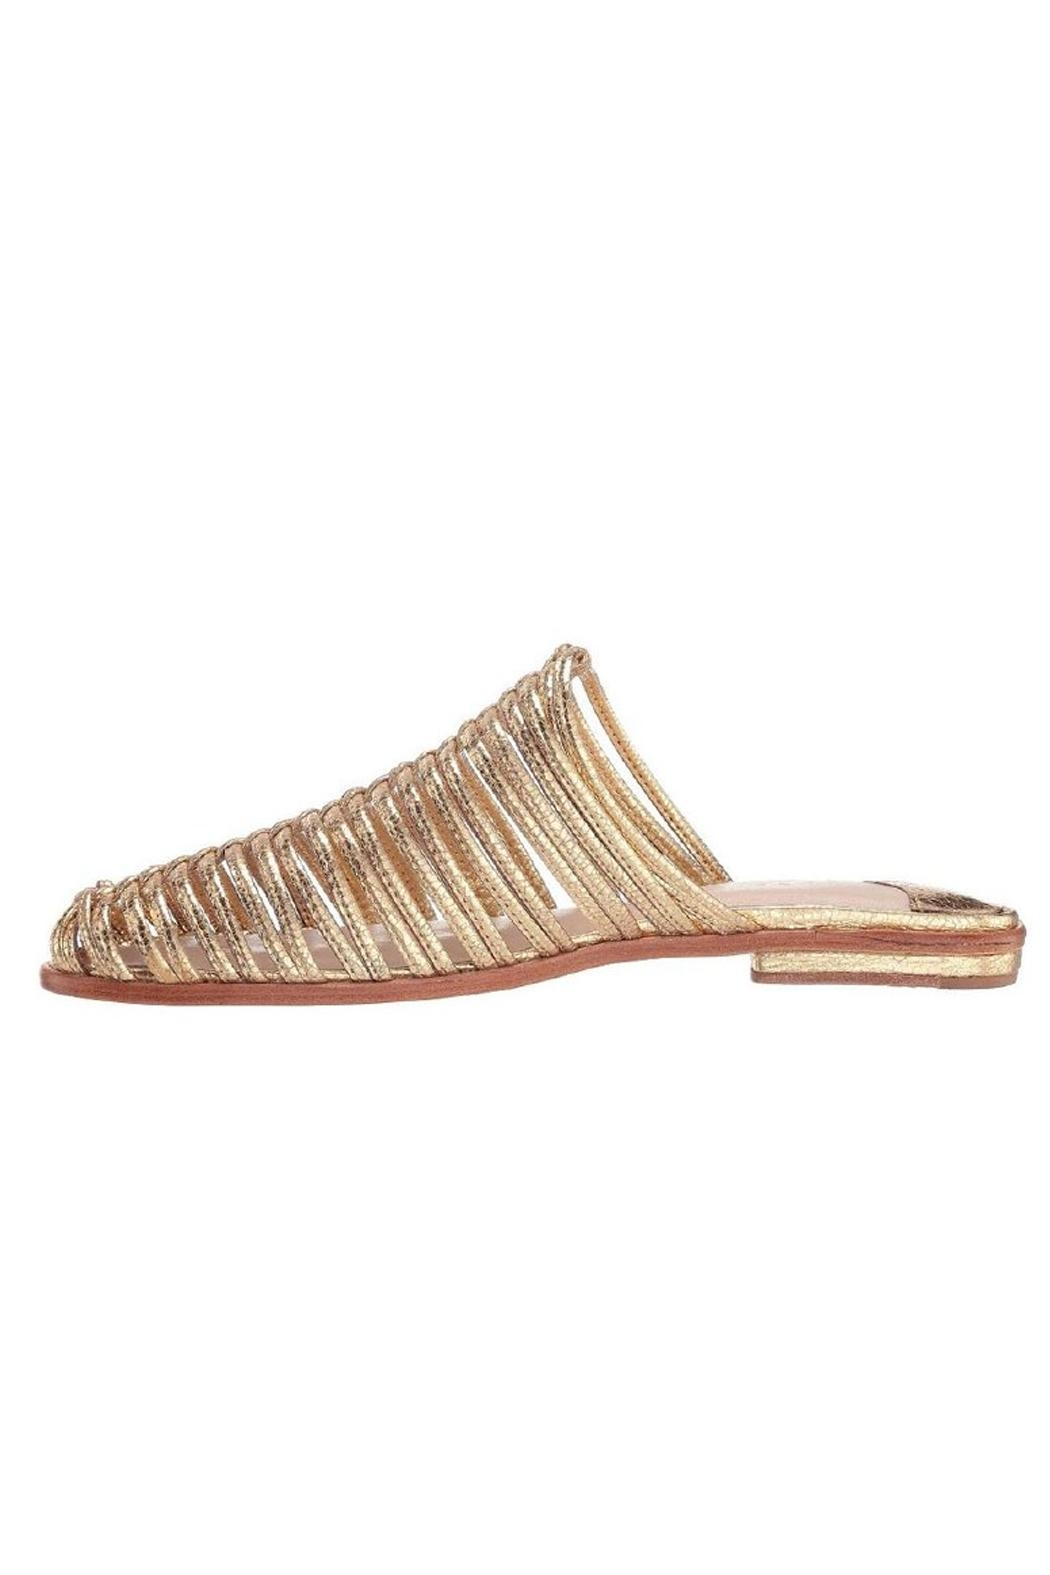 Cecelia New York Gold Metallic Mules - Main Image